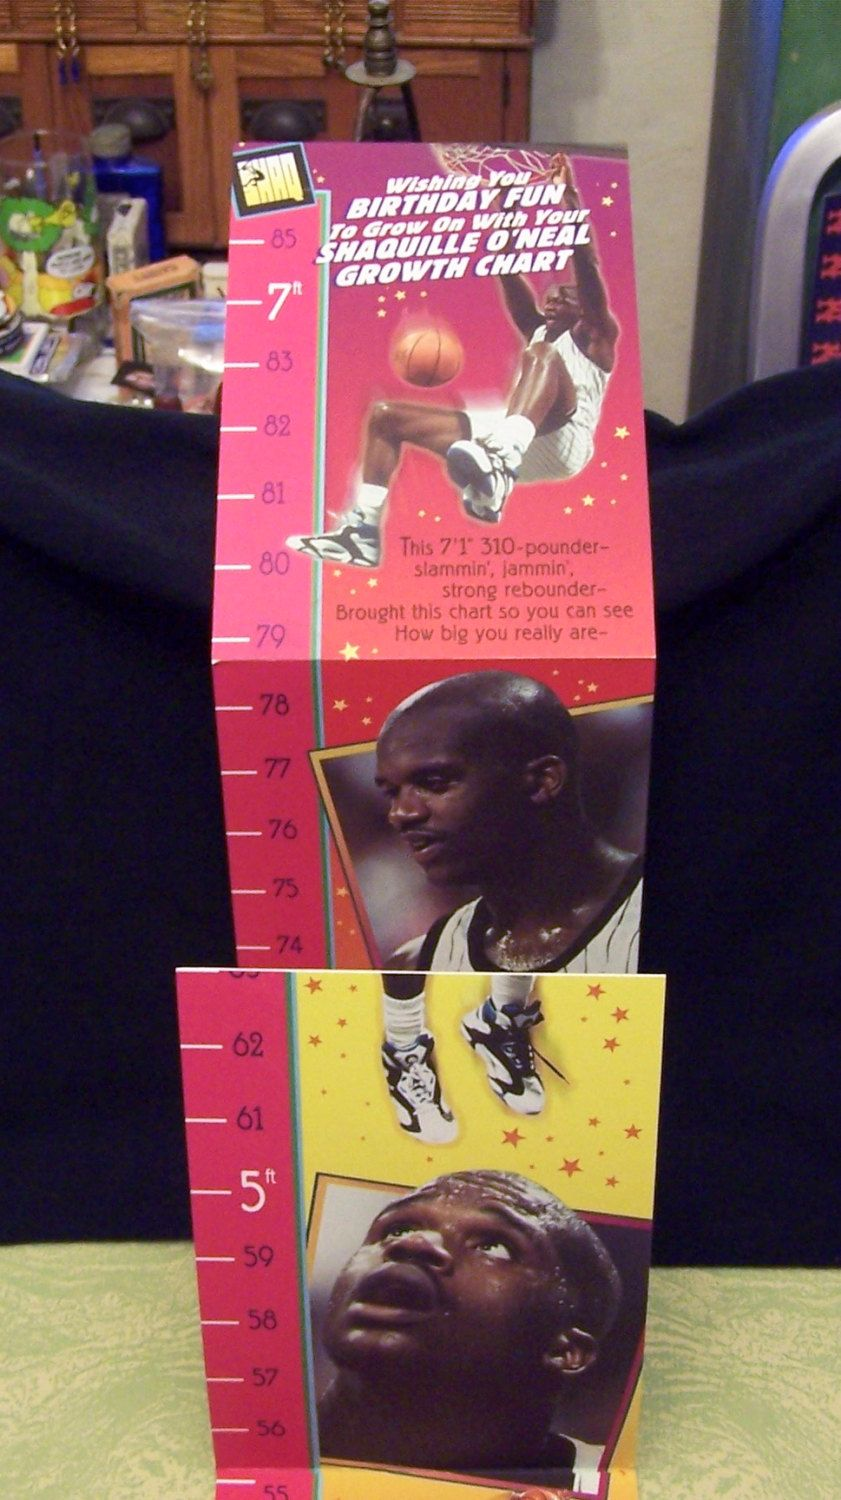 1995 Hallmark Classic Shaq Shaquille O Neal Birthday Card Fold Out